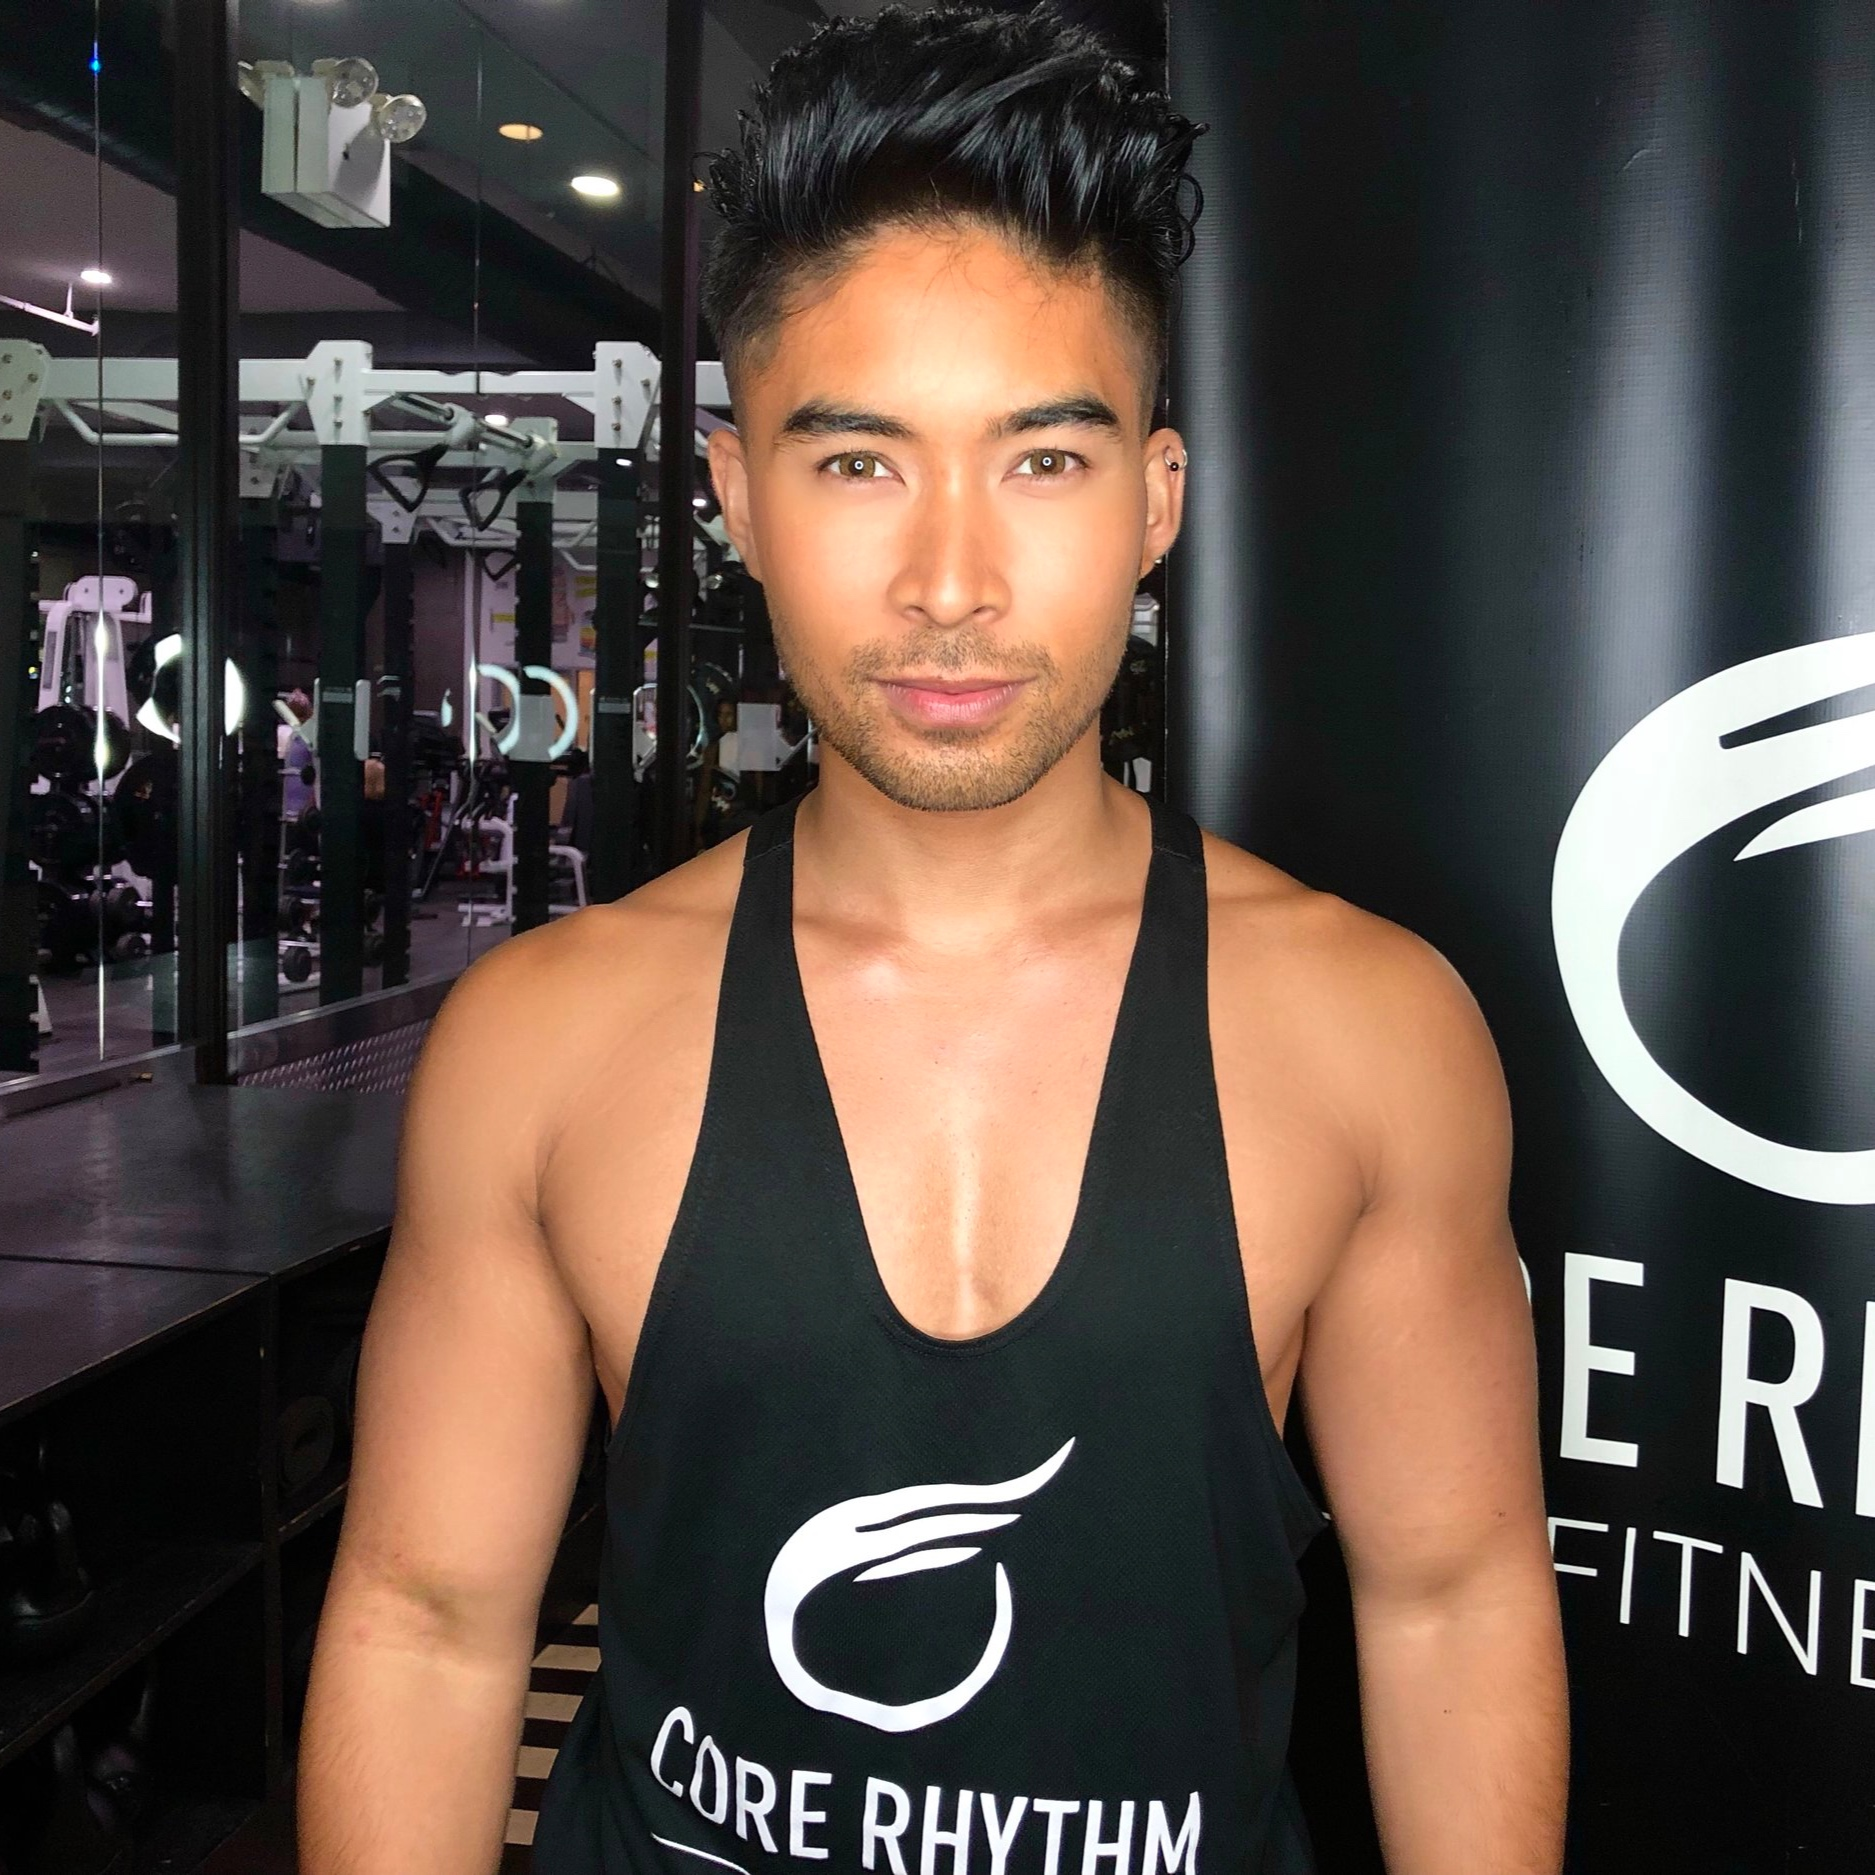 Jay Covington - General ManagerThe journey of transformation starts with a single step. To create a shift in your lifestyle requires patience, hard work and community! At CRF we specialize in SHREDDING, SCULPTING and TONING the body.@jay_lorenzo20